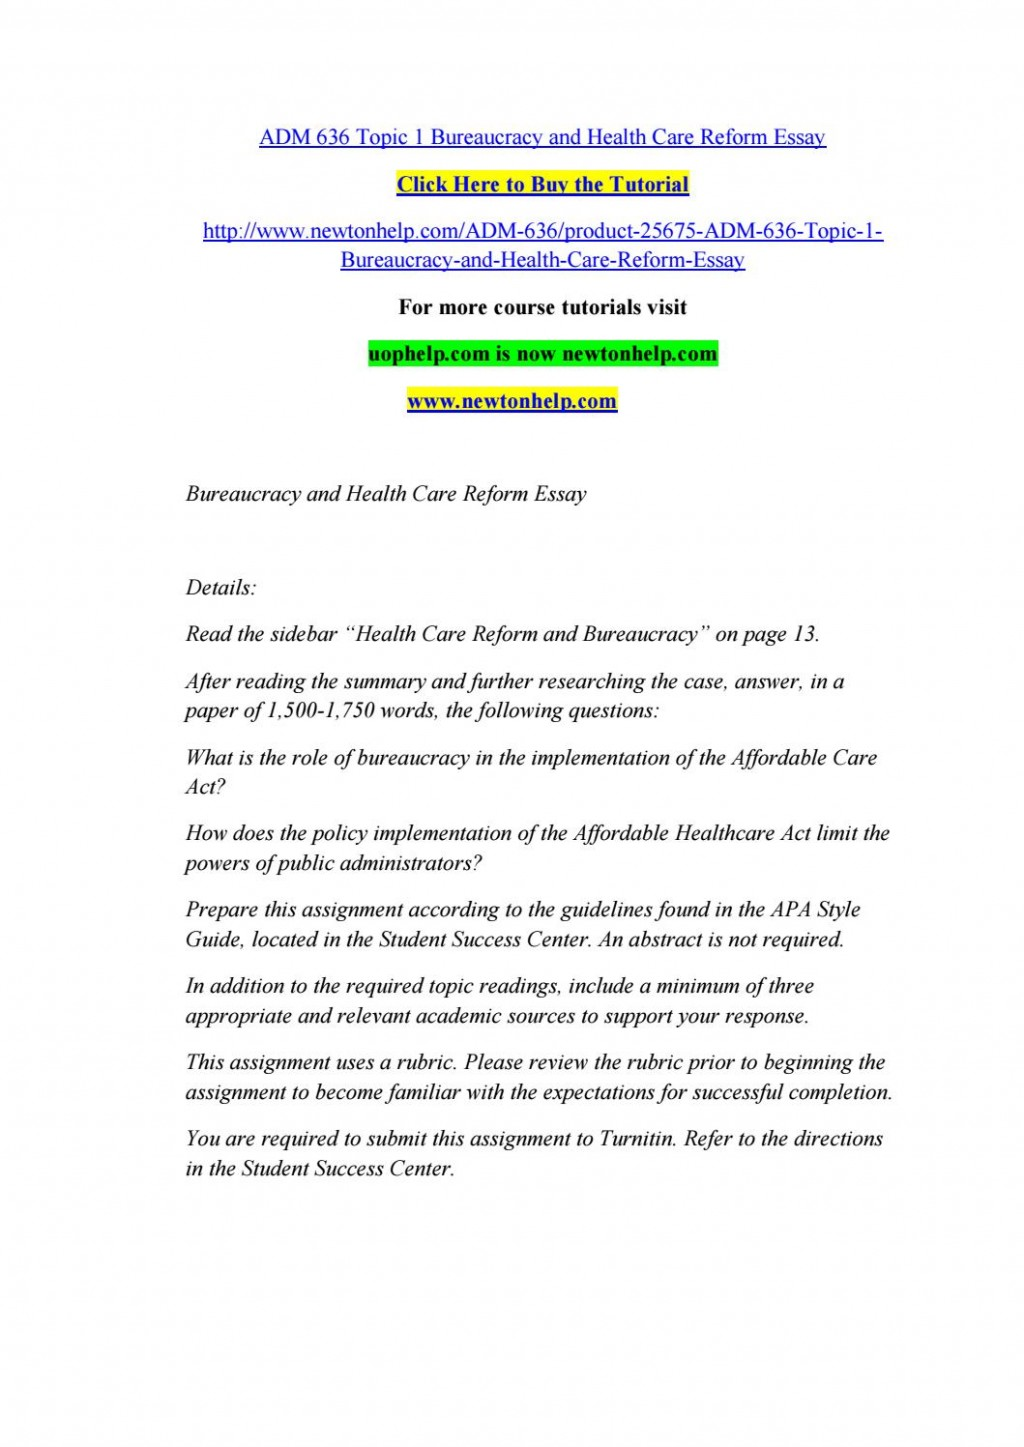 009 Health Care Essay Example Affordable Act Obamacare Com English Speech P Argumentative Impressive Universal Introduction Assignment Cost Access And Quality In Large